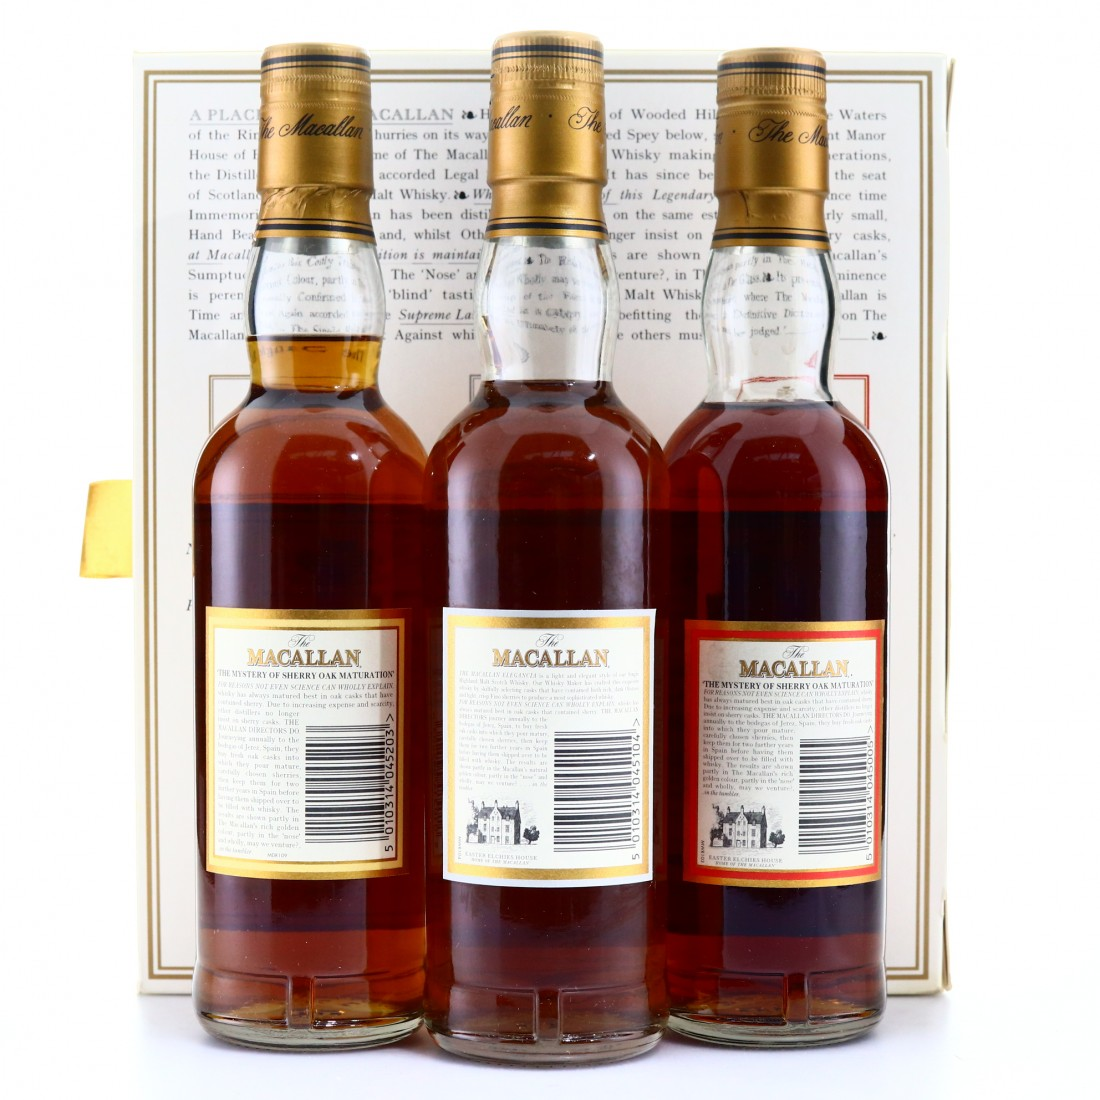 Macallan Travellers Choice 3 x 33.3cl / Macallan Travellers Choice 3 x 33.3cl/ Including Cask Strength 10 Year Old 58.5%​​​​​​​